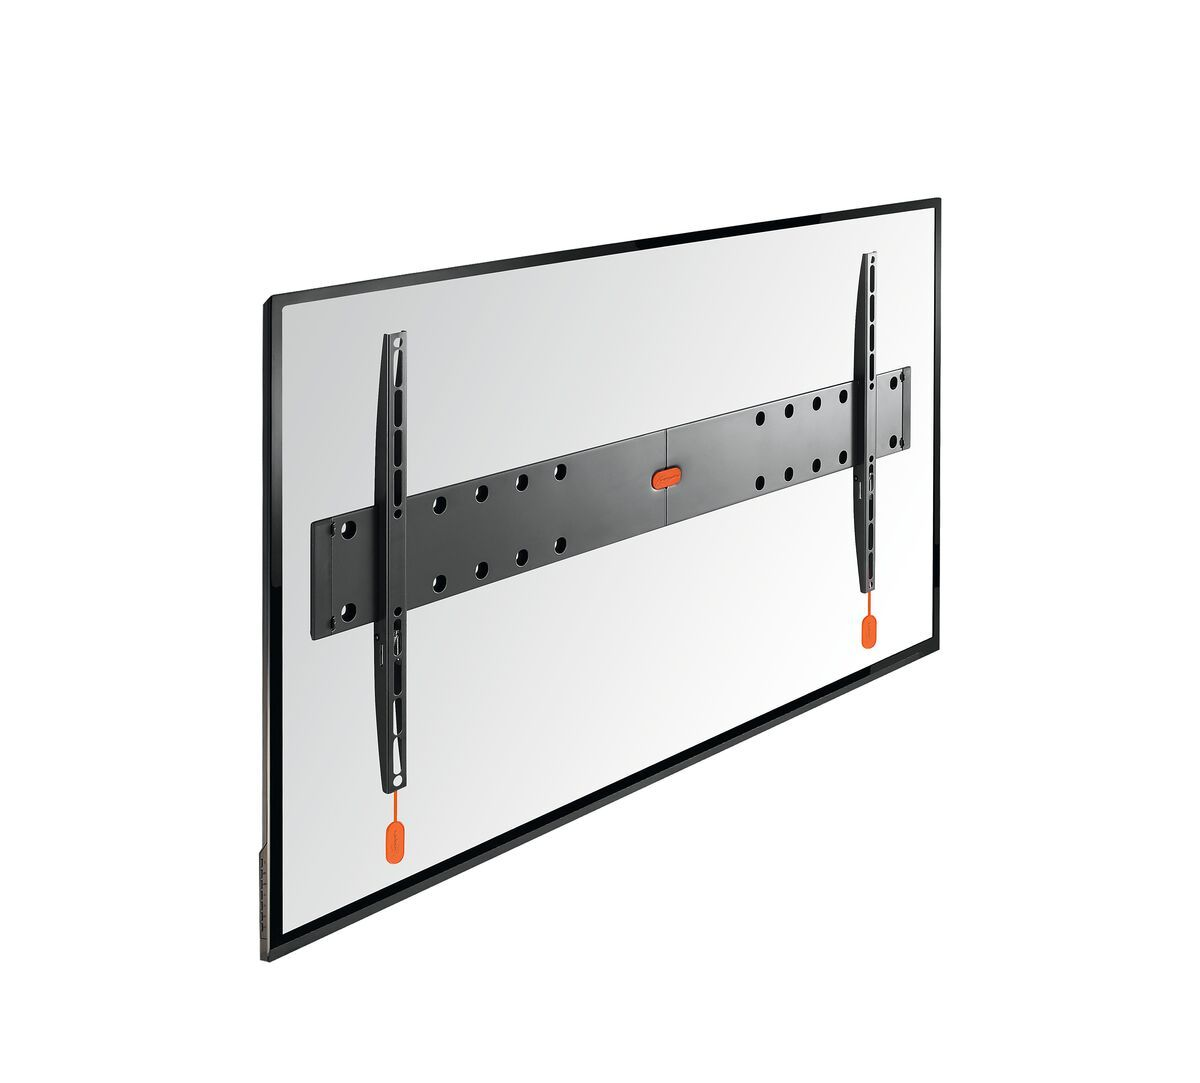 Vogel's BASE 05 L Fixed TV Wall Mount - Suitable for 40 up to 80 inch TVs up to 70 kg - Product